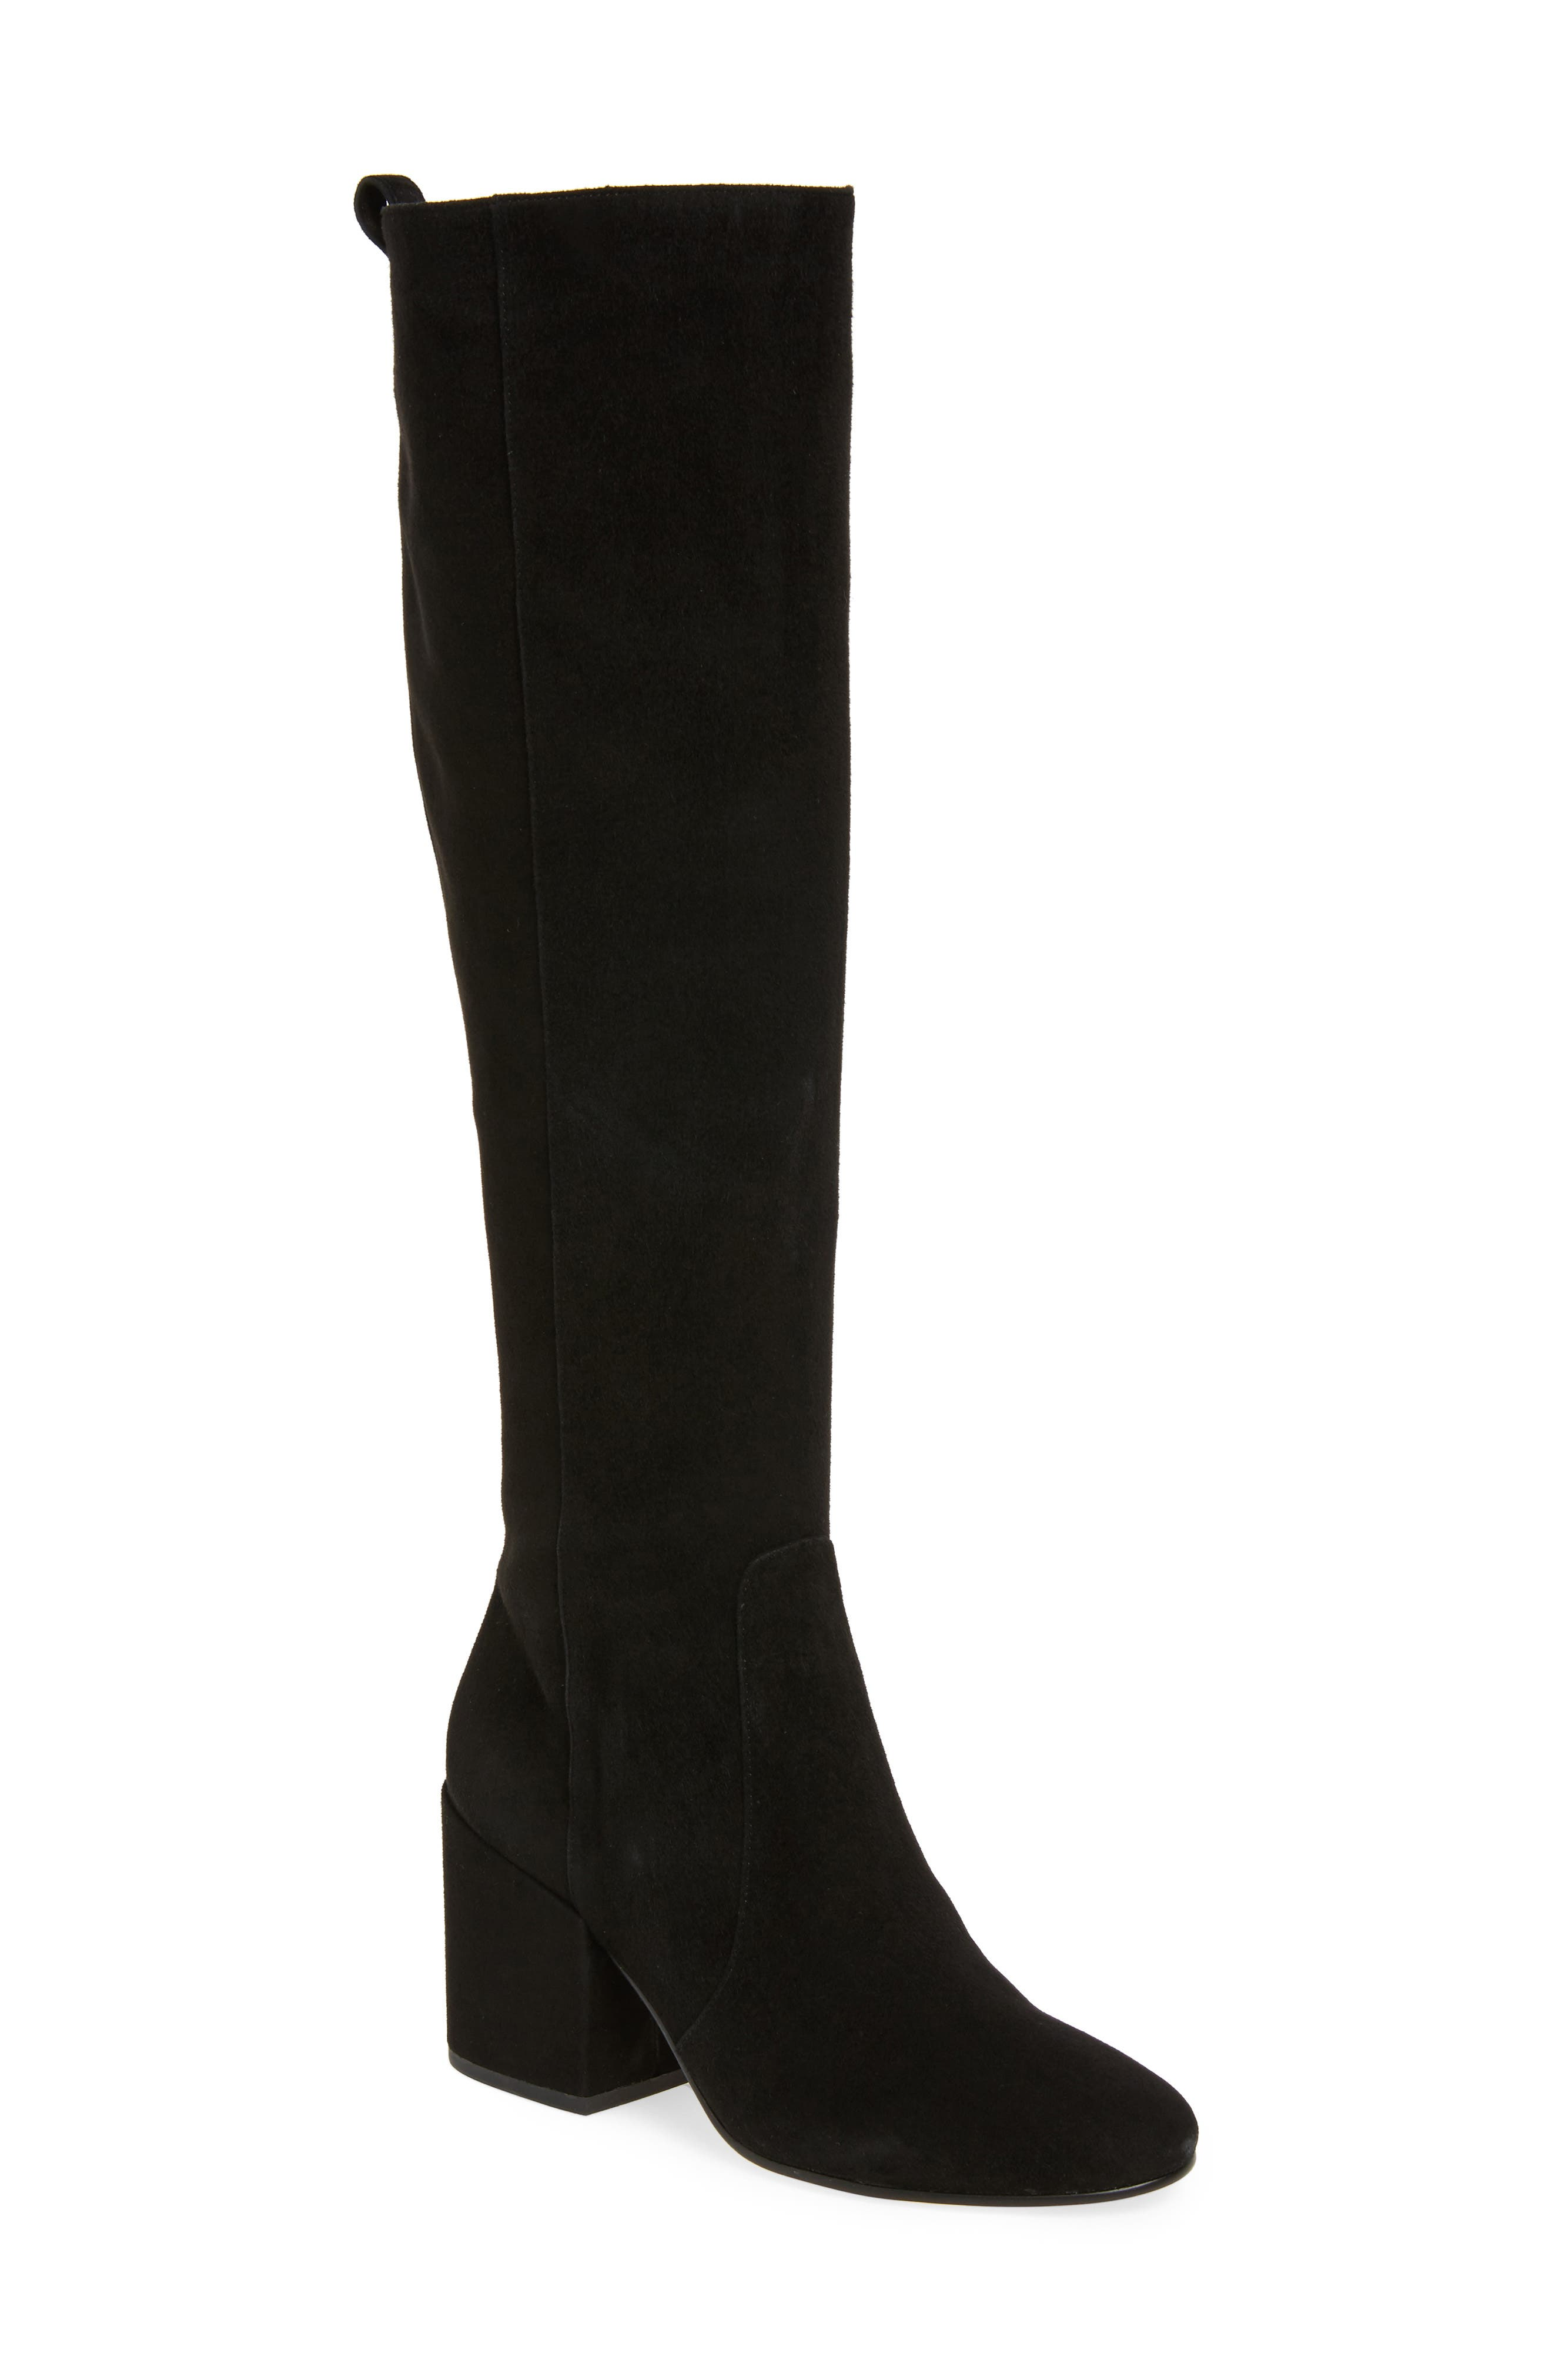 Thora Knee High Boot,                             Main thumbnail 1, color,                             Black Leather